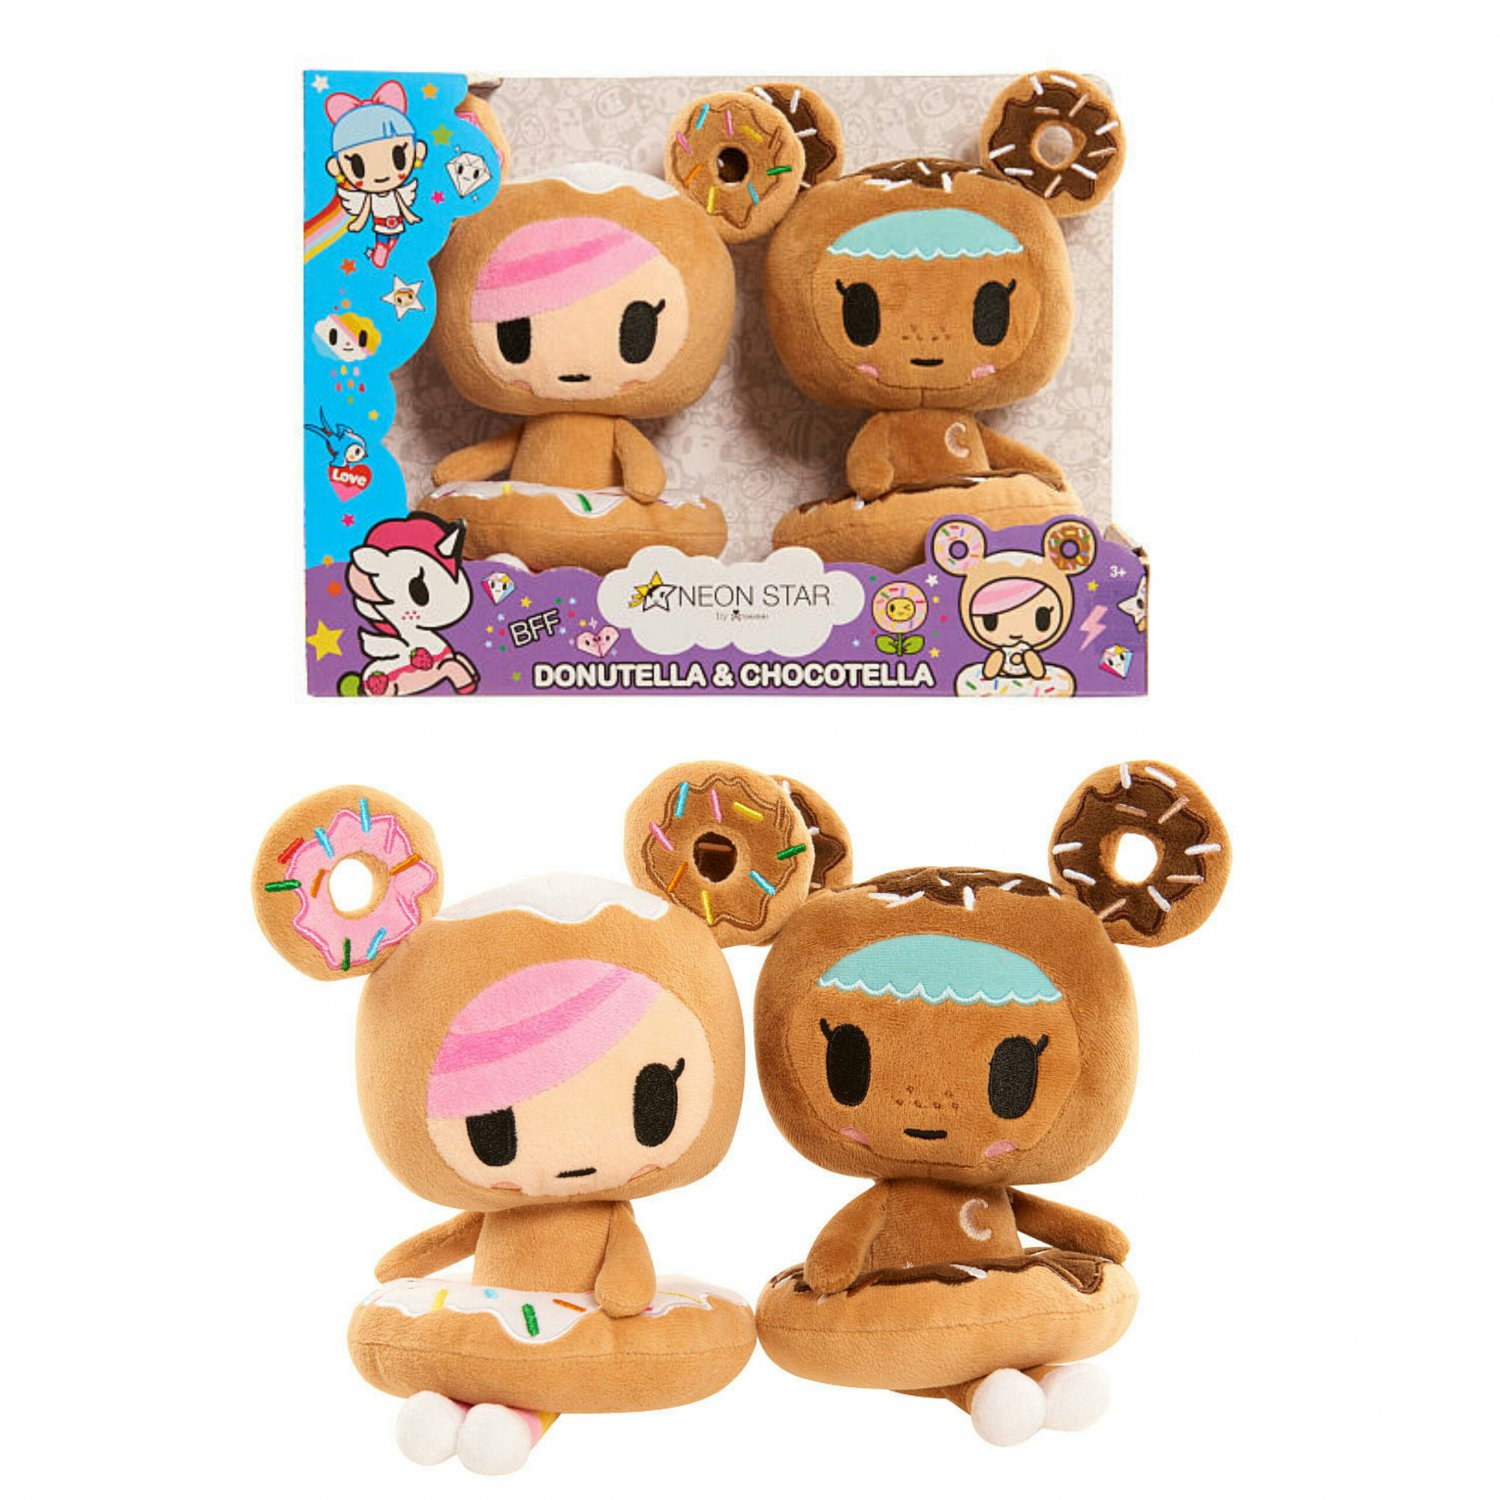 Neon Star by Tokidoki 2 Pack Plush Figures - Donutella & Chocolate by Just Play